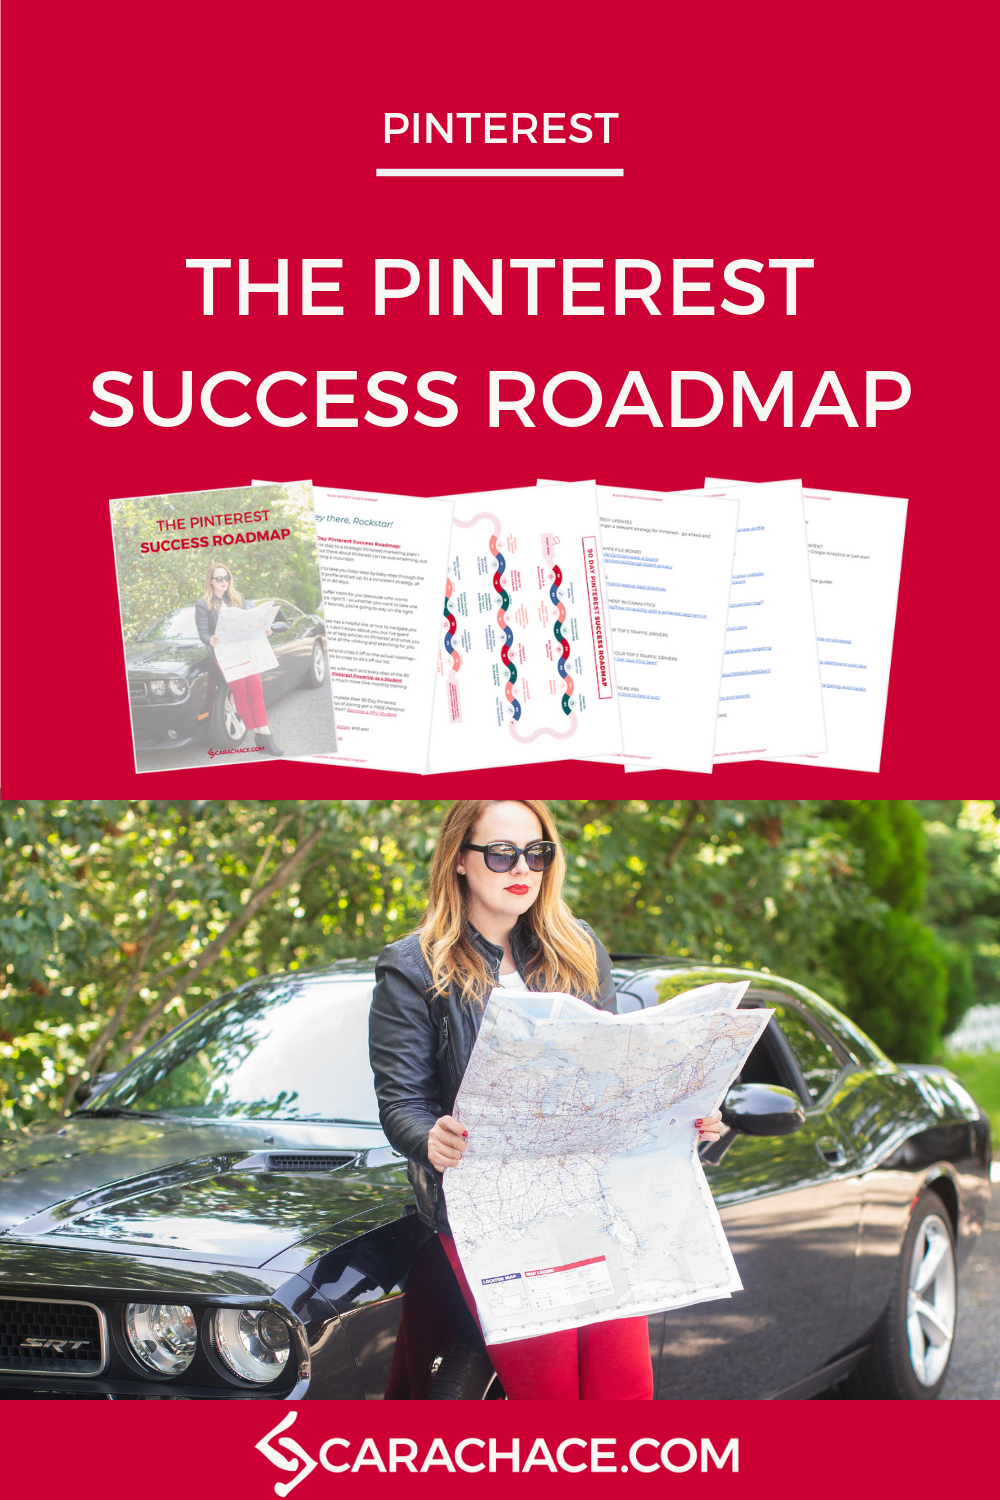 Need a step-by-step plan for your Pinterest marketing strategy? This roadmap is designed to take entrepreneurs and small business owners through everything they need to create a working marketing funnel, get more email subscribers, and turn their website traffic into customers. Learn more inside at pinterestpowerup.com #pinterestmarketing #pinteresttips #carachace